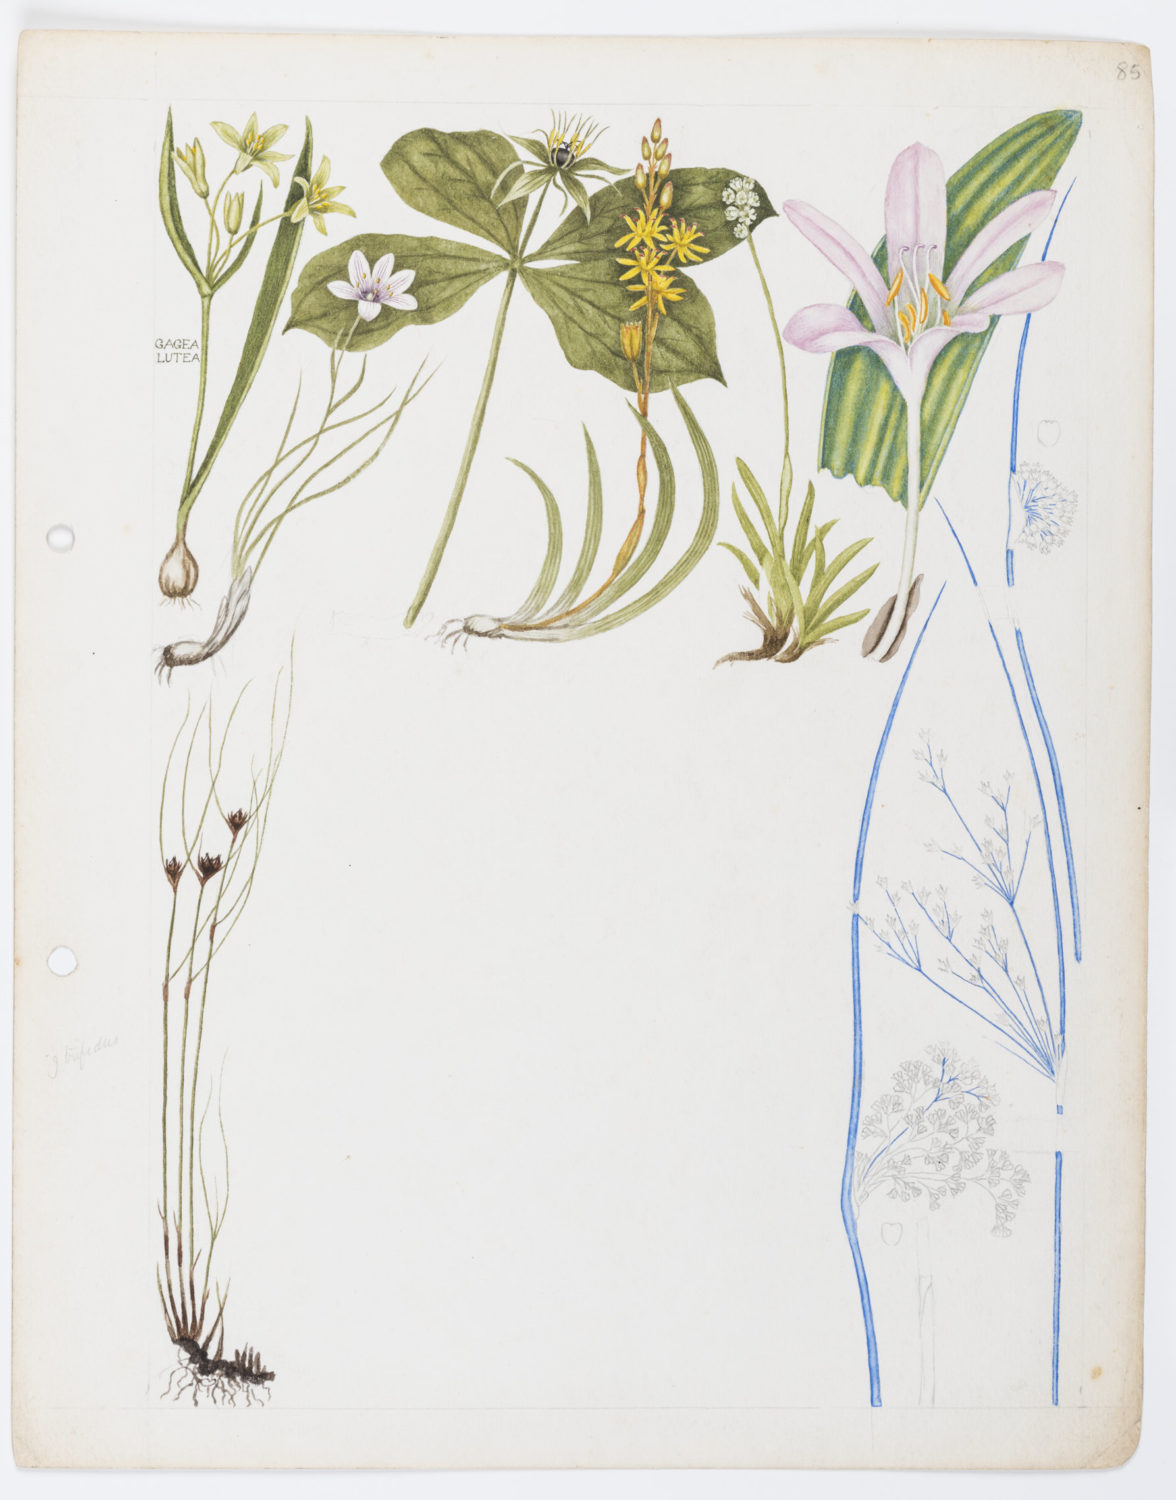 Illustration of Liliaceae & Juncaceae: lilies and rushes by Keble Martin